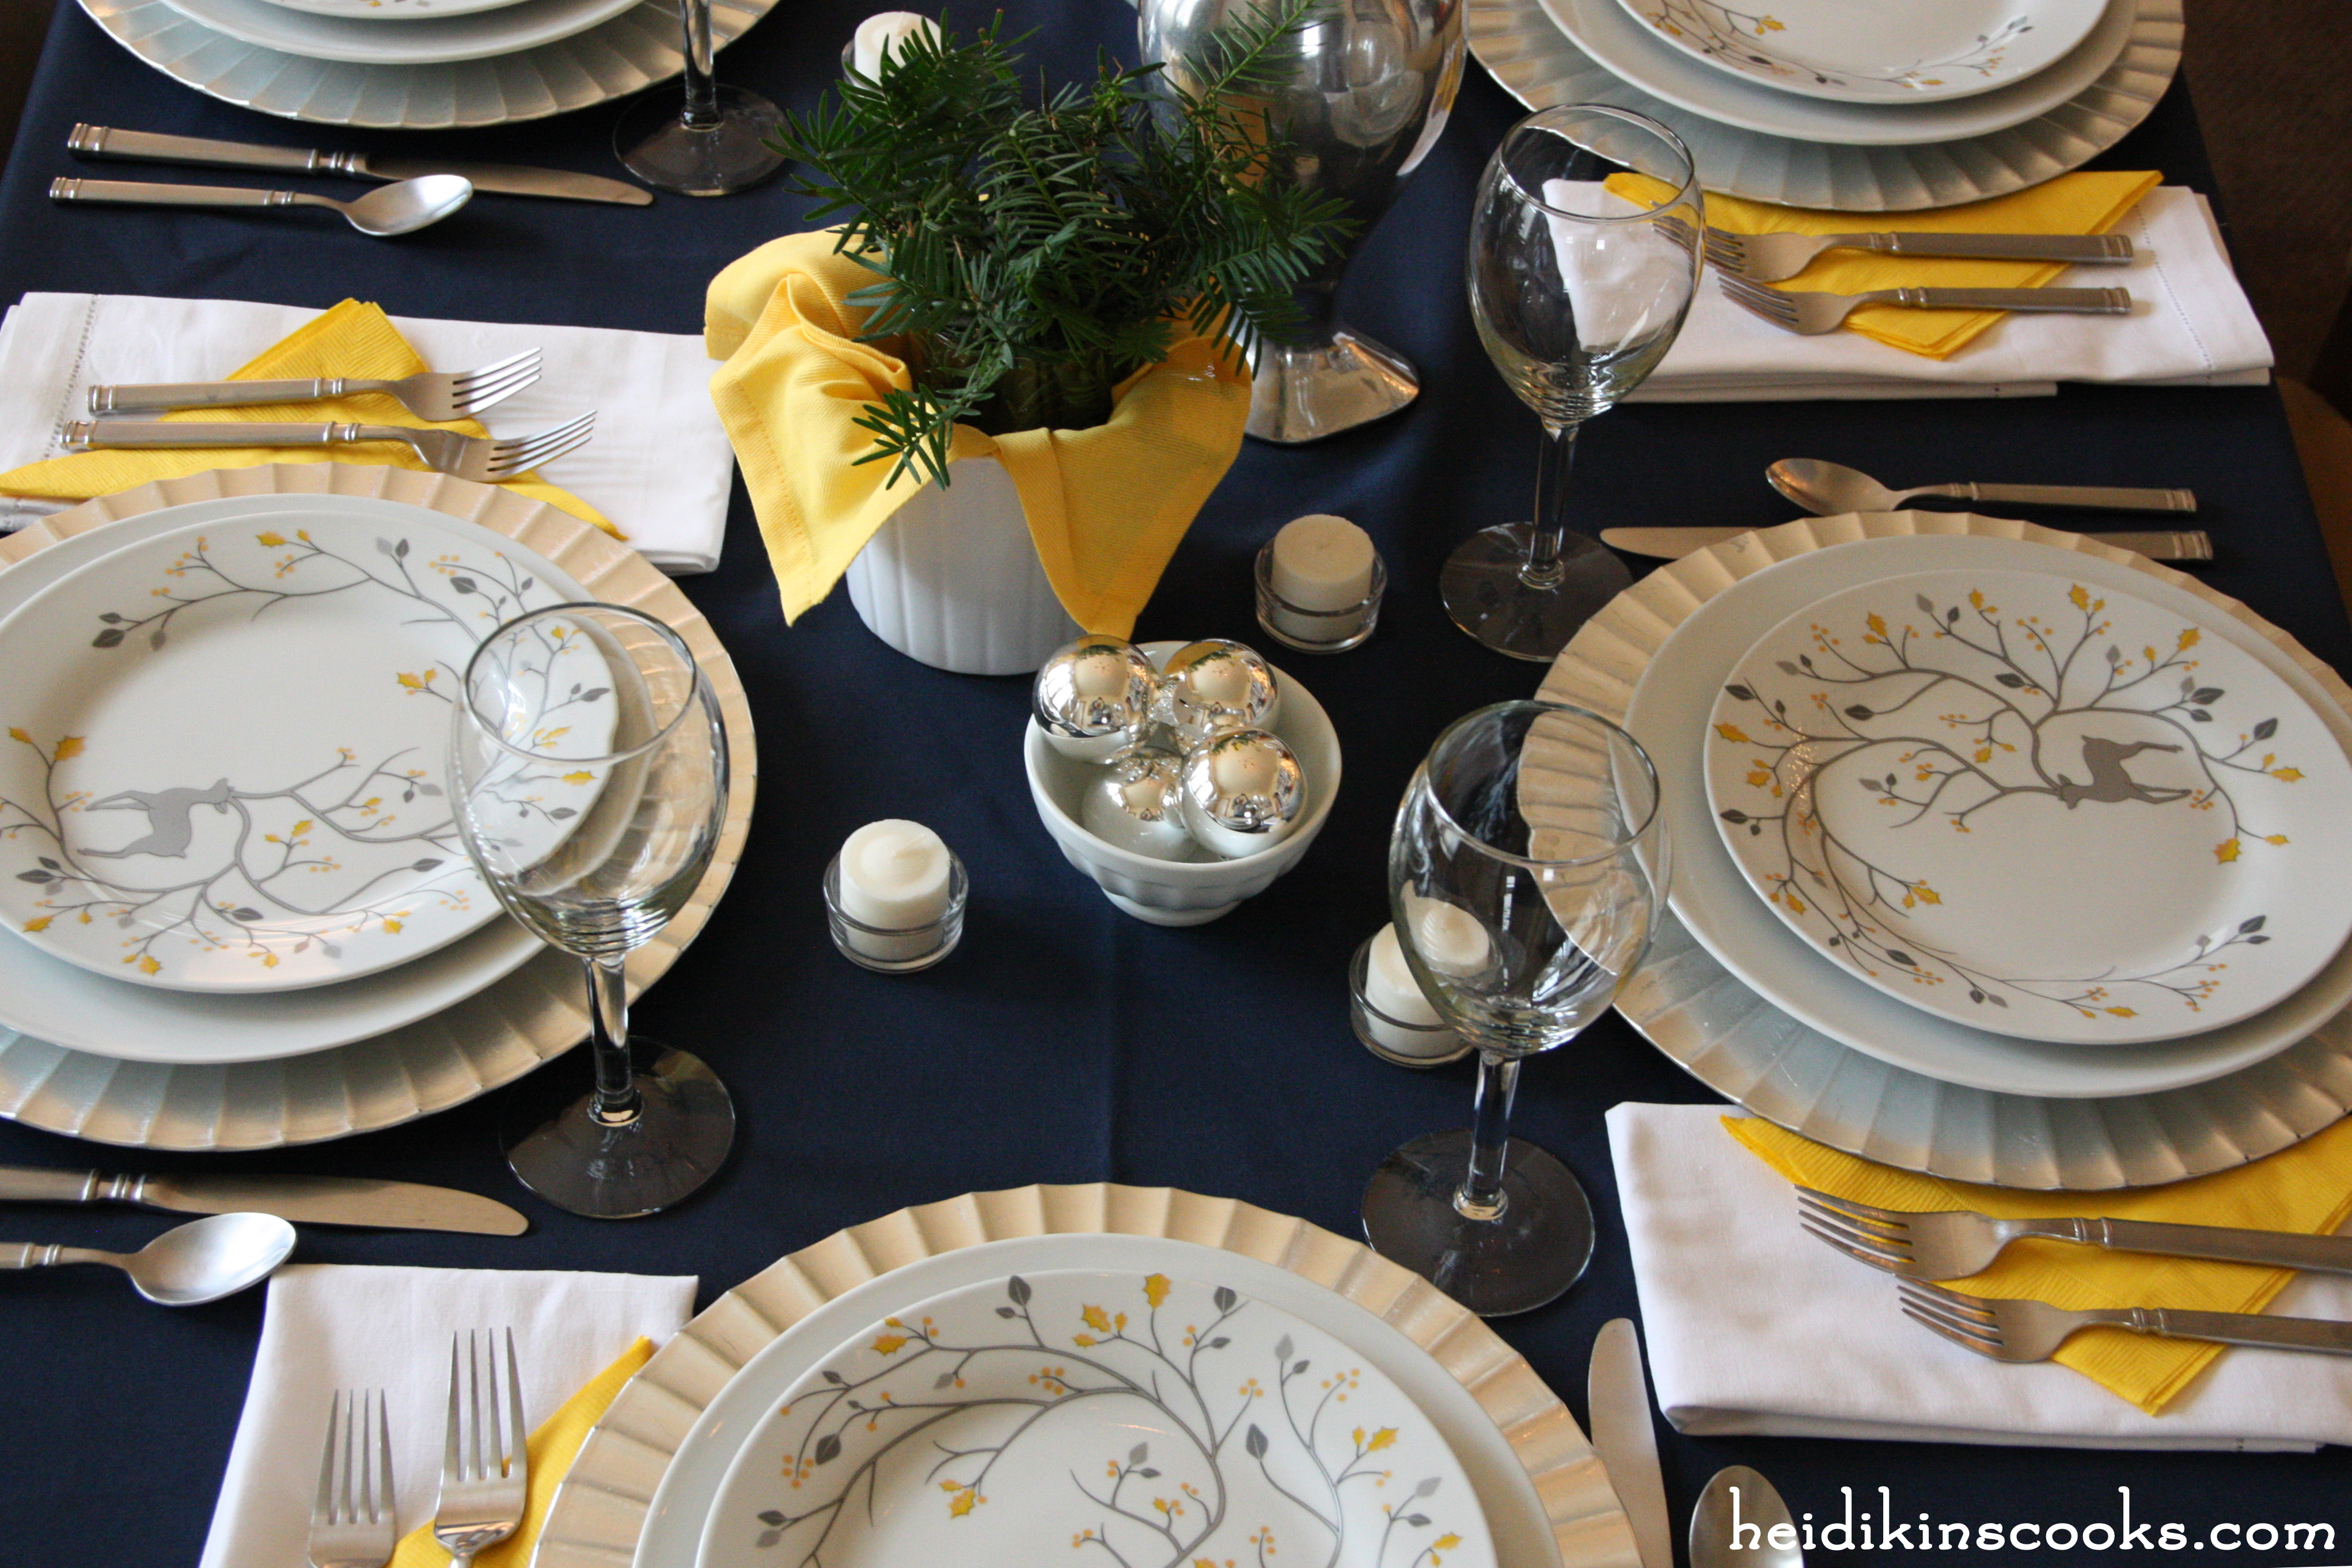 Setting a nontraditional but festive Christmas table | heidikins cooks